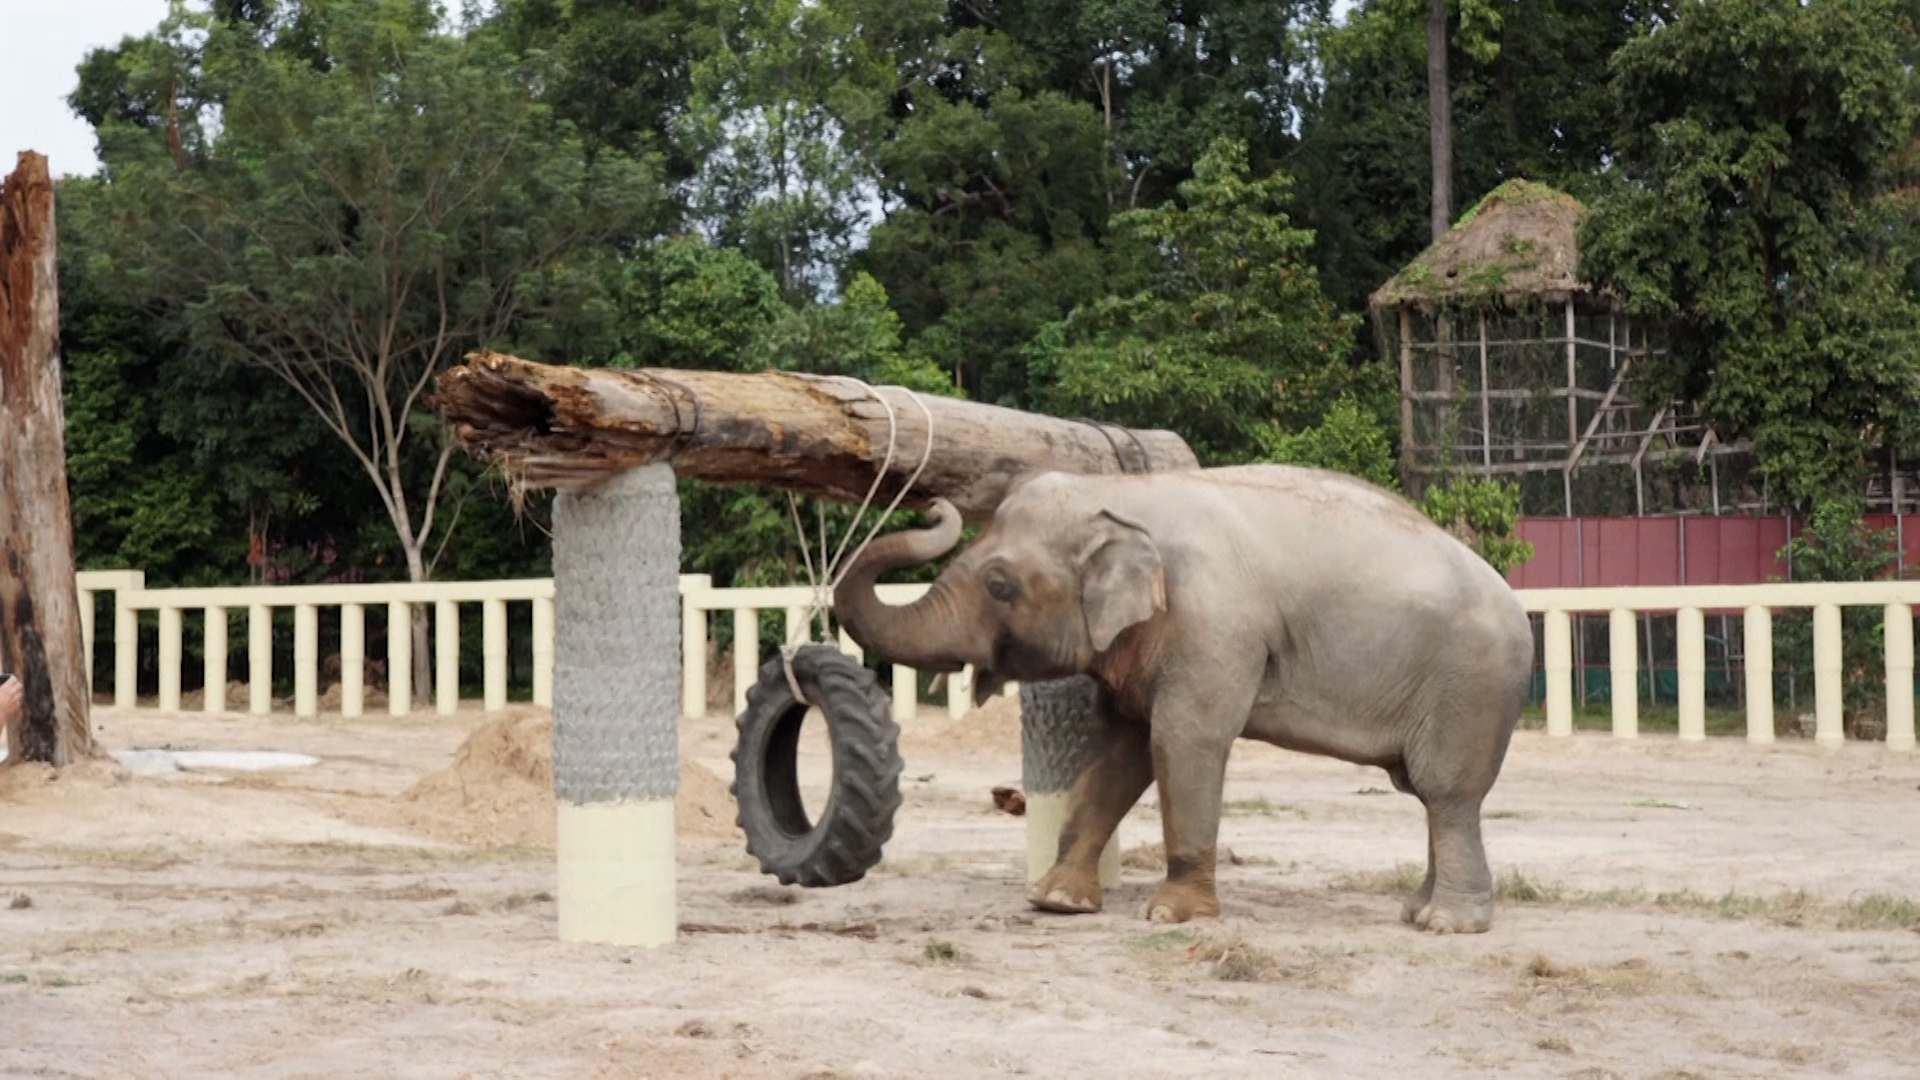 Happily ever after: Kaavan begins enjoying Cambodia home